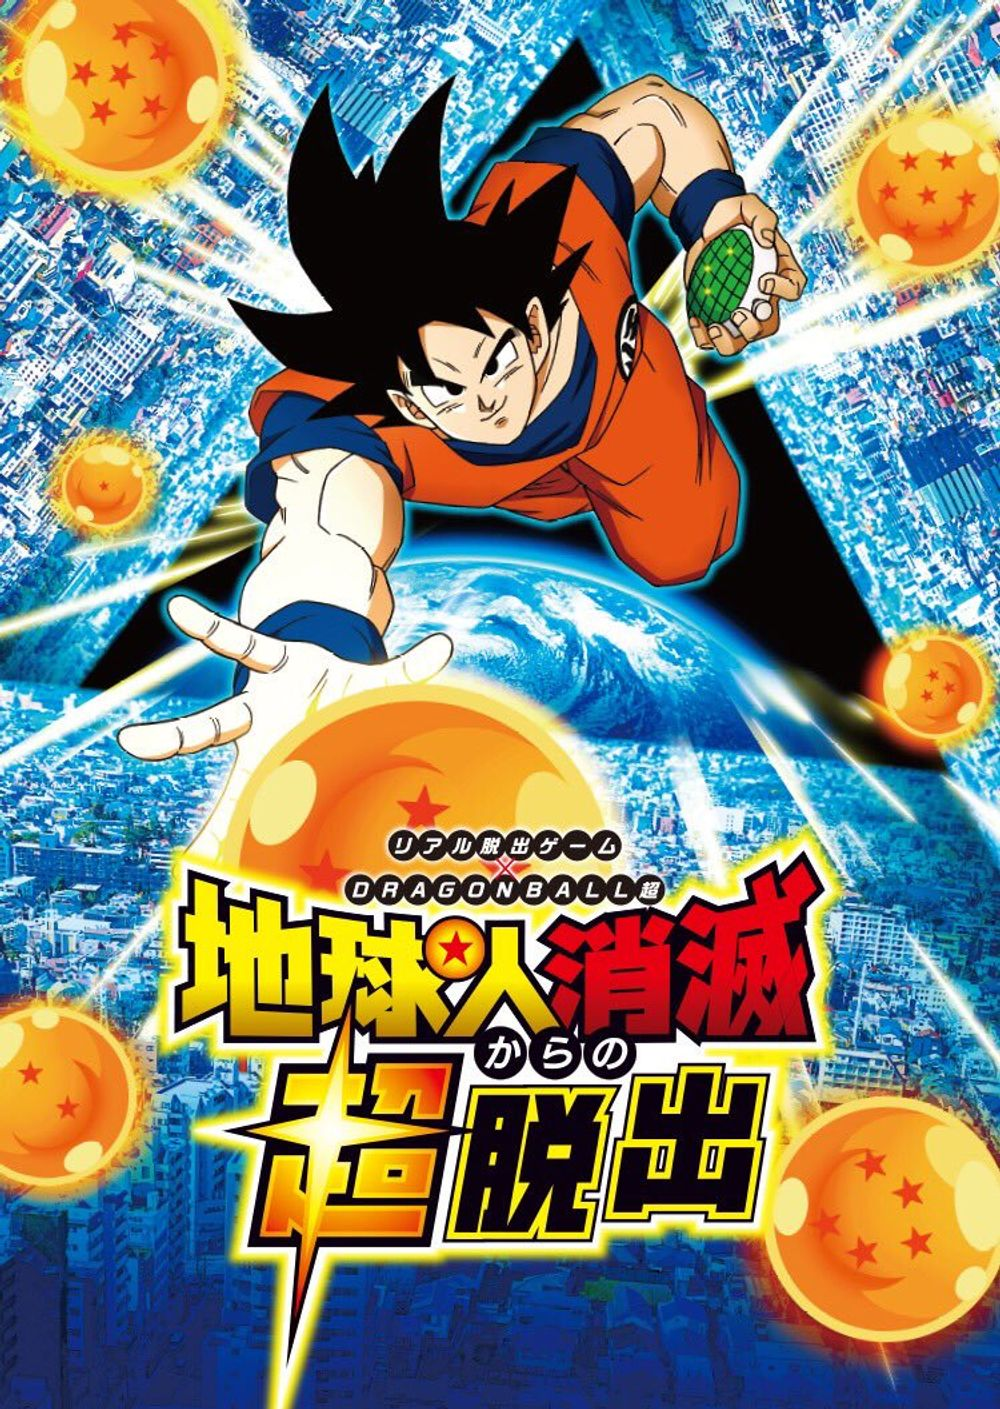 3-Dragon Ball Super: Broly